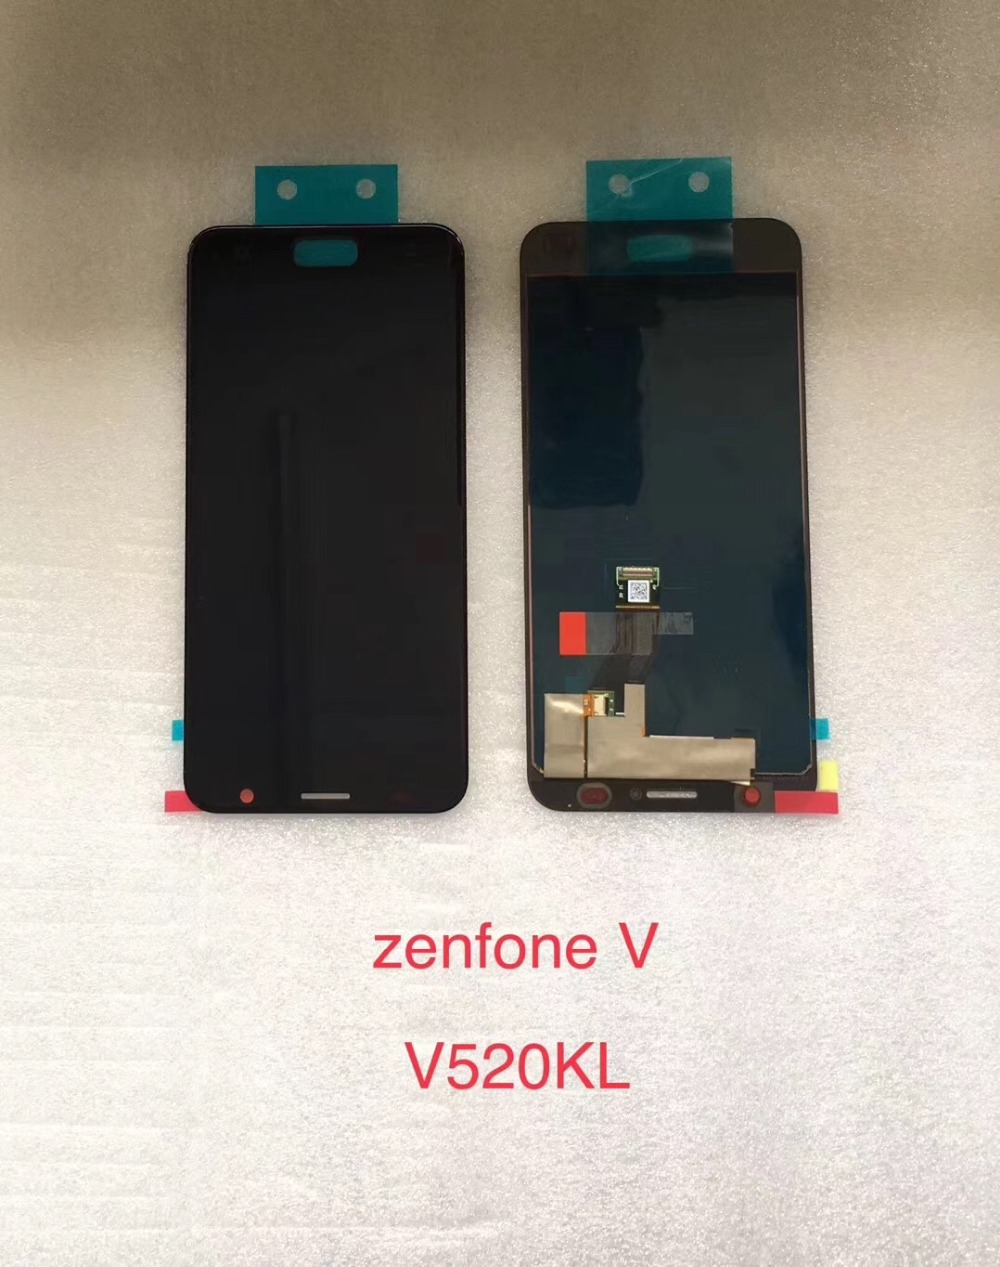 ACKOOLLA Mobile Phone LCDs for ASUS Zenfone V V520KL A006 Accessories Parts Mobile Phone LCDs Touch Screen